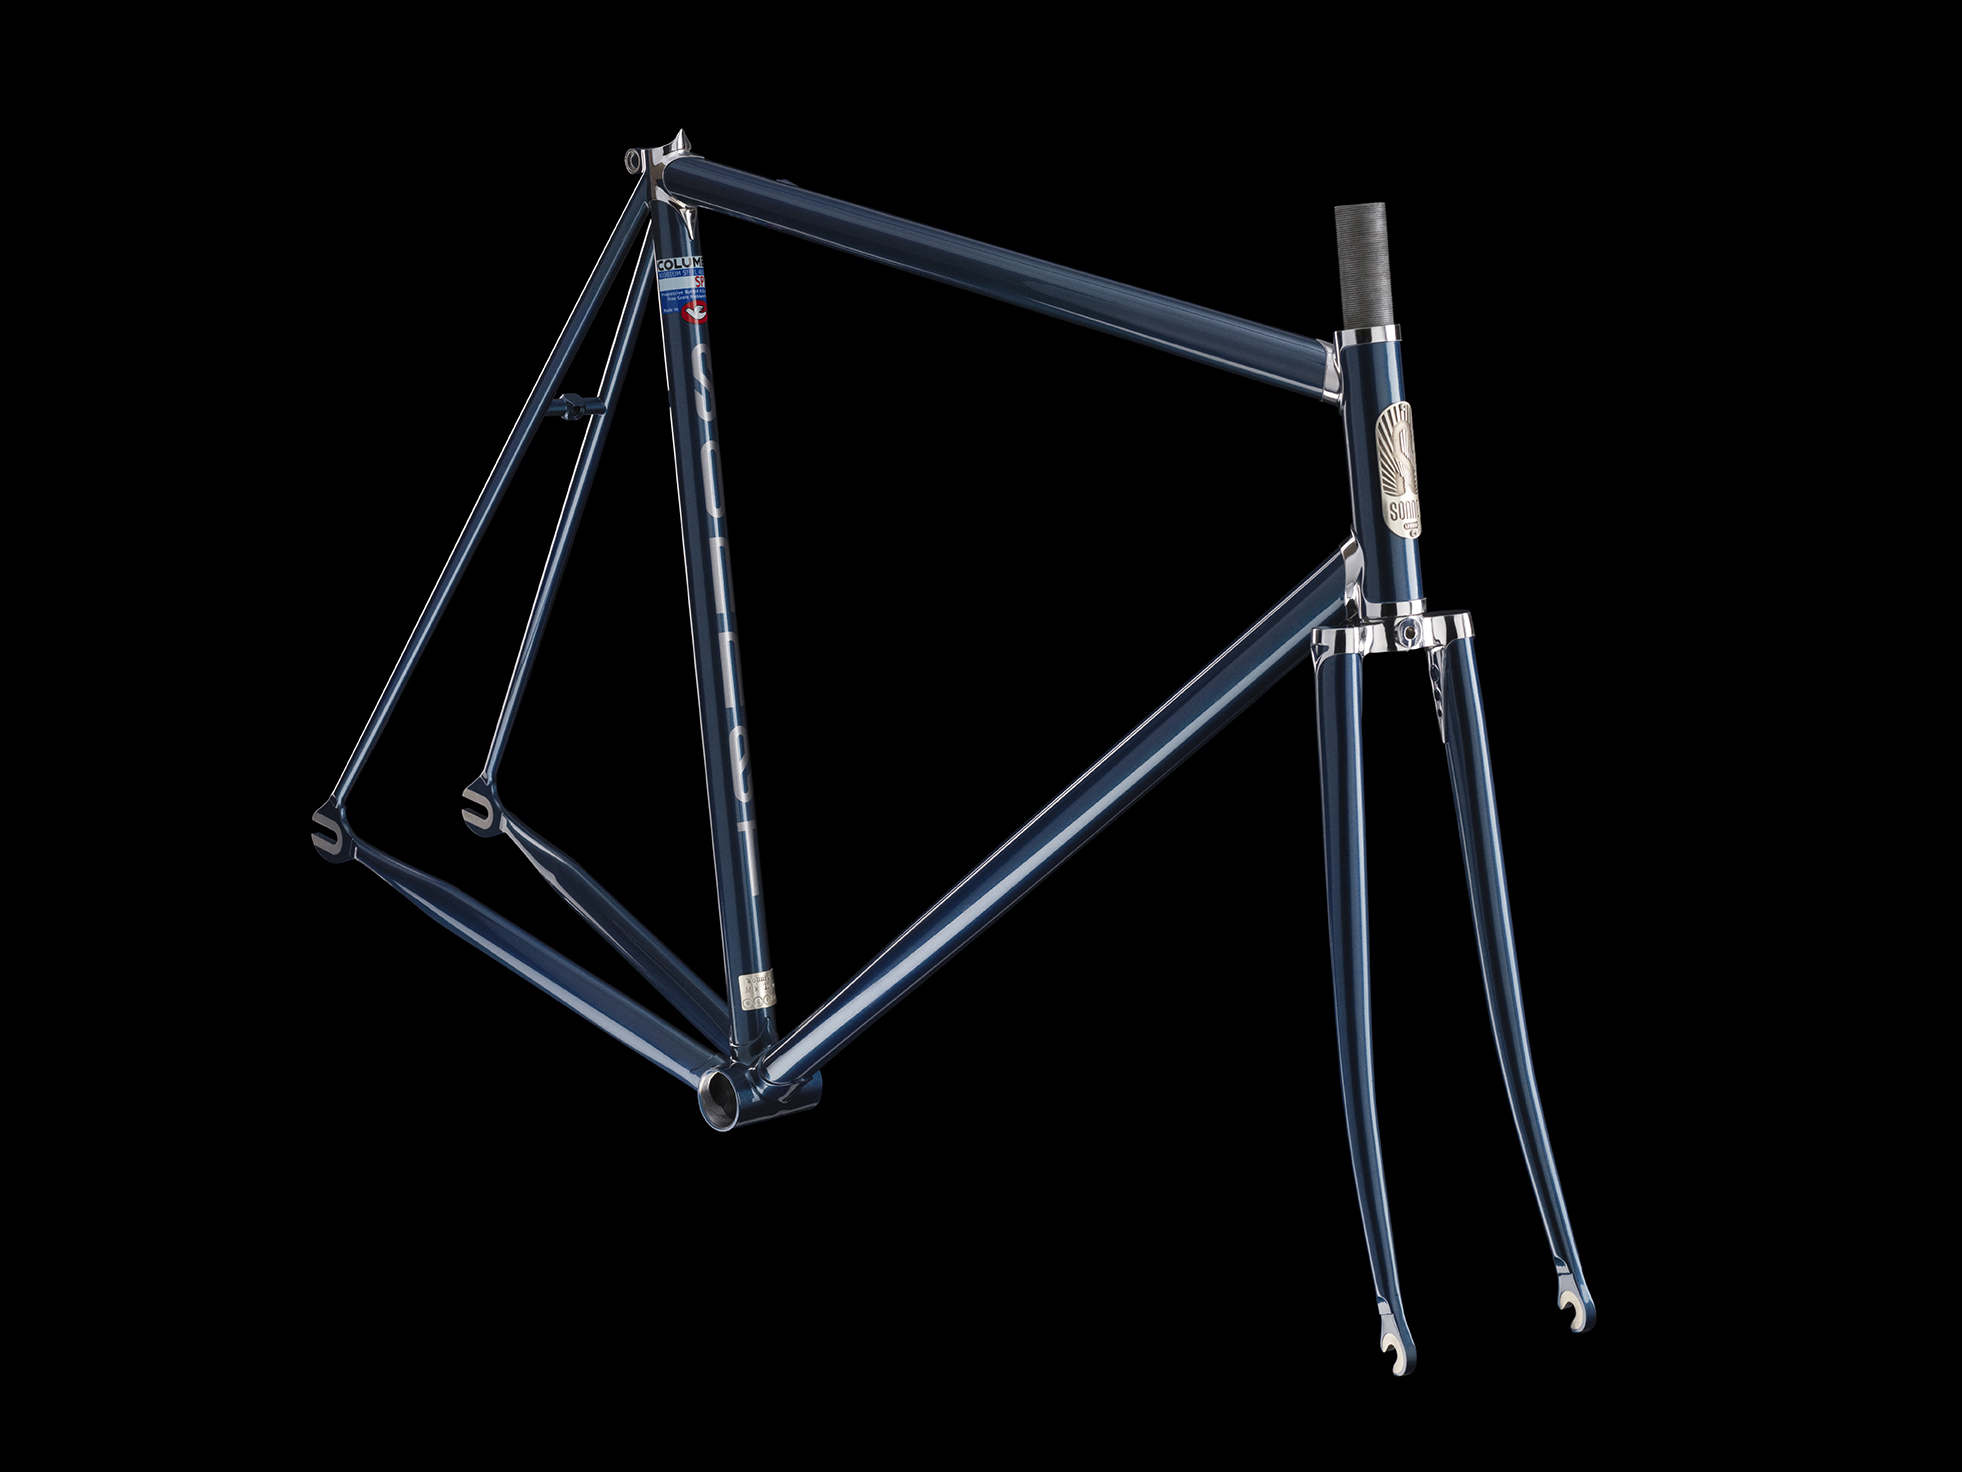 Sonnet artisan classic lugged steel track fixed gear bicycle frame